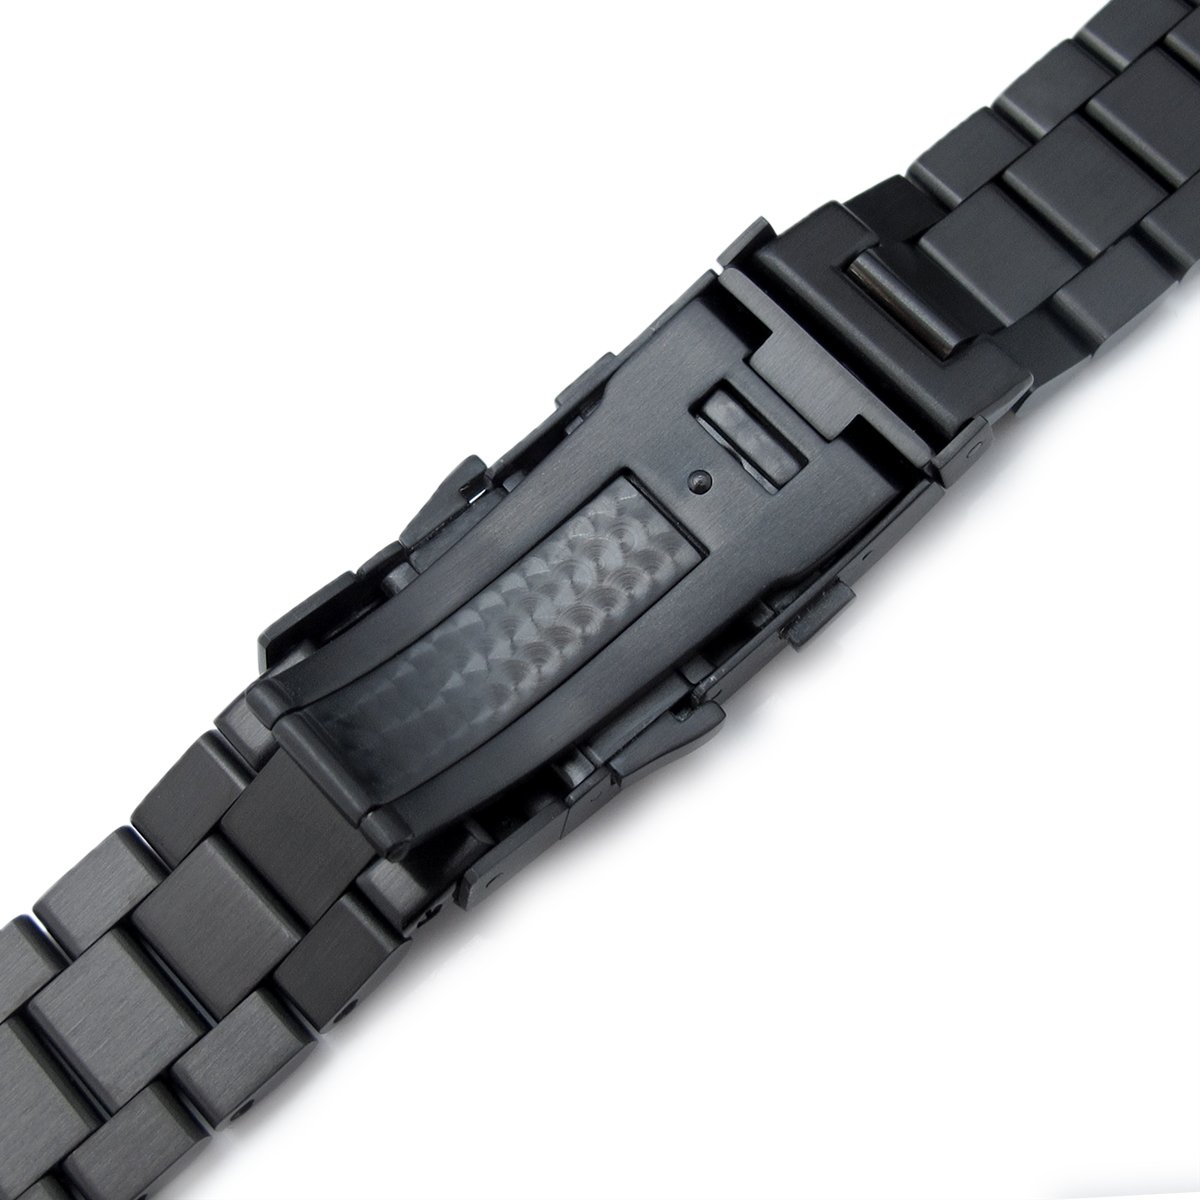 22mm Solid 316L SS Endmill Metal Watch Bracelet, Straight End, Ratchet Clasp, PVD Black by 22mm Metal Band by MiLTAT (Image #5)